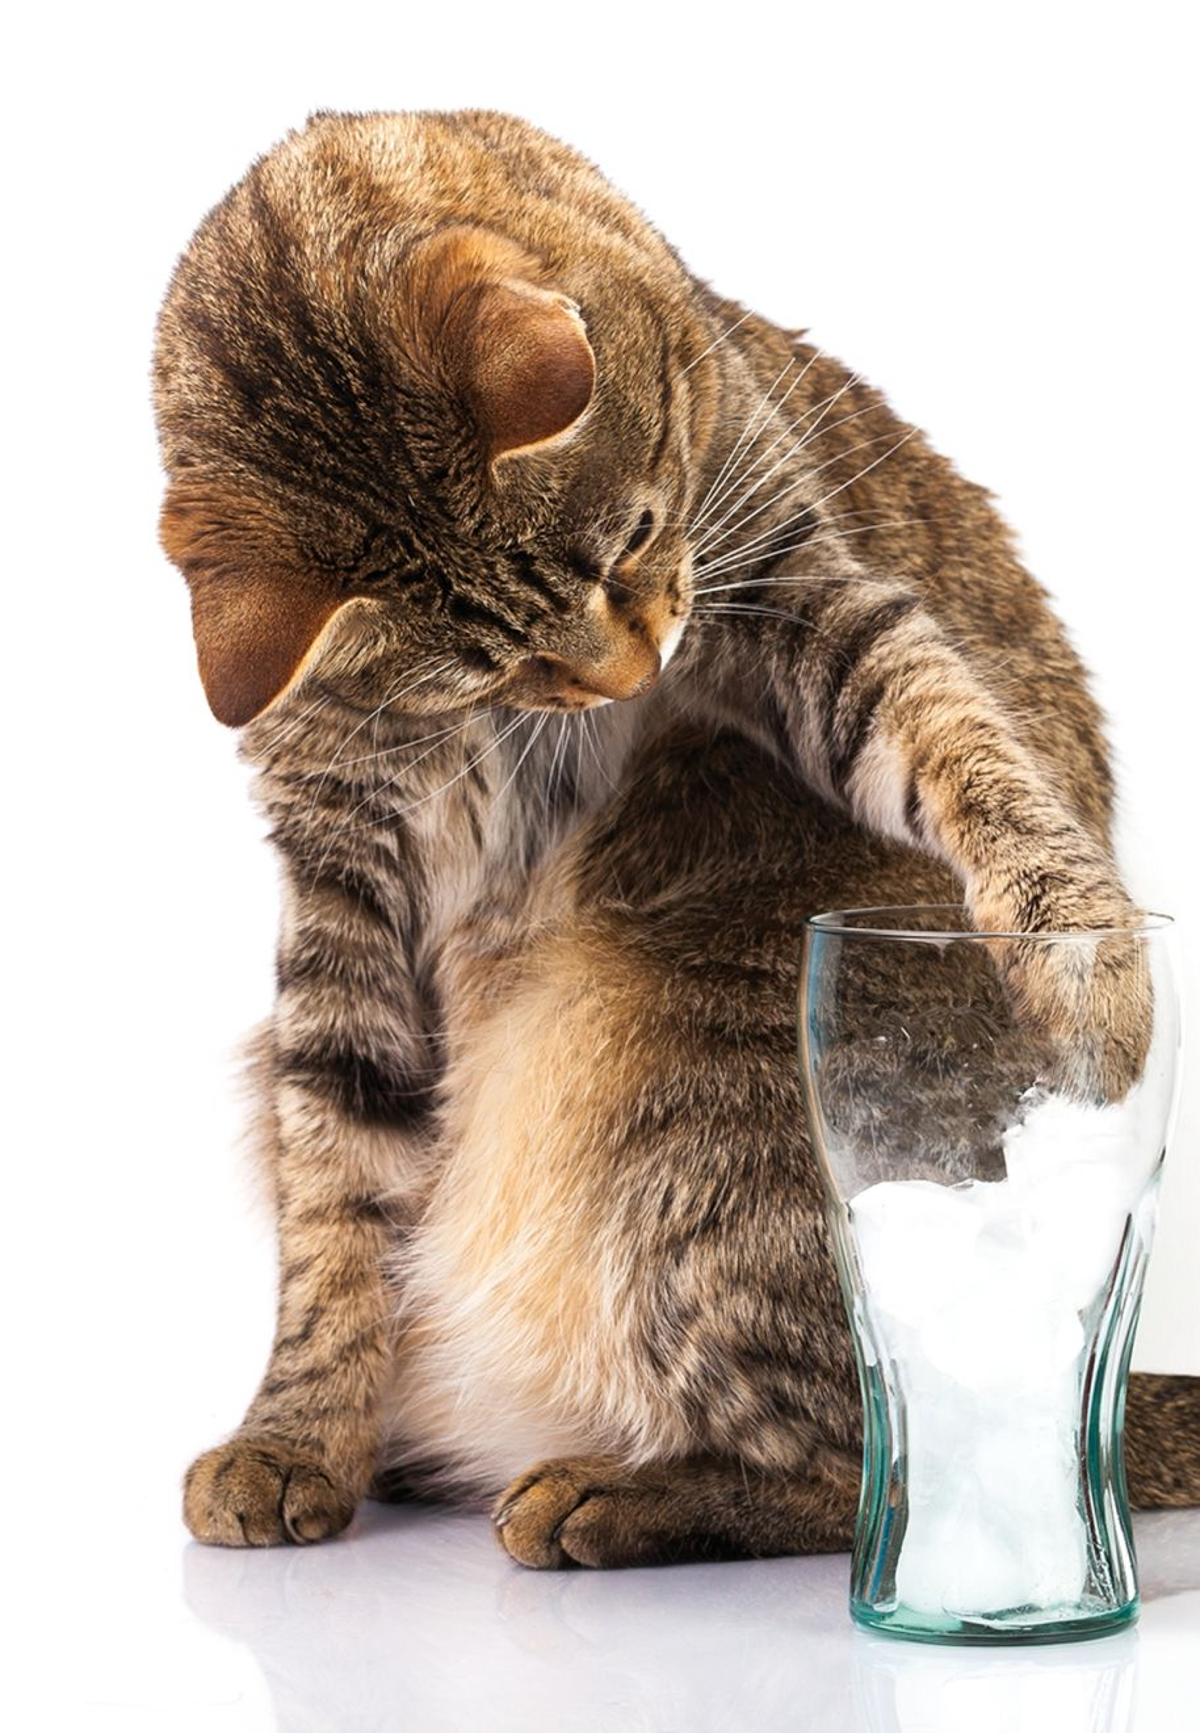 Cats may find novel water sources such as ice cubes an interesting toy, and this can also encourage water intake.